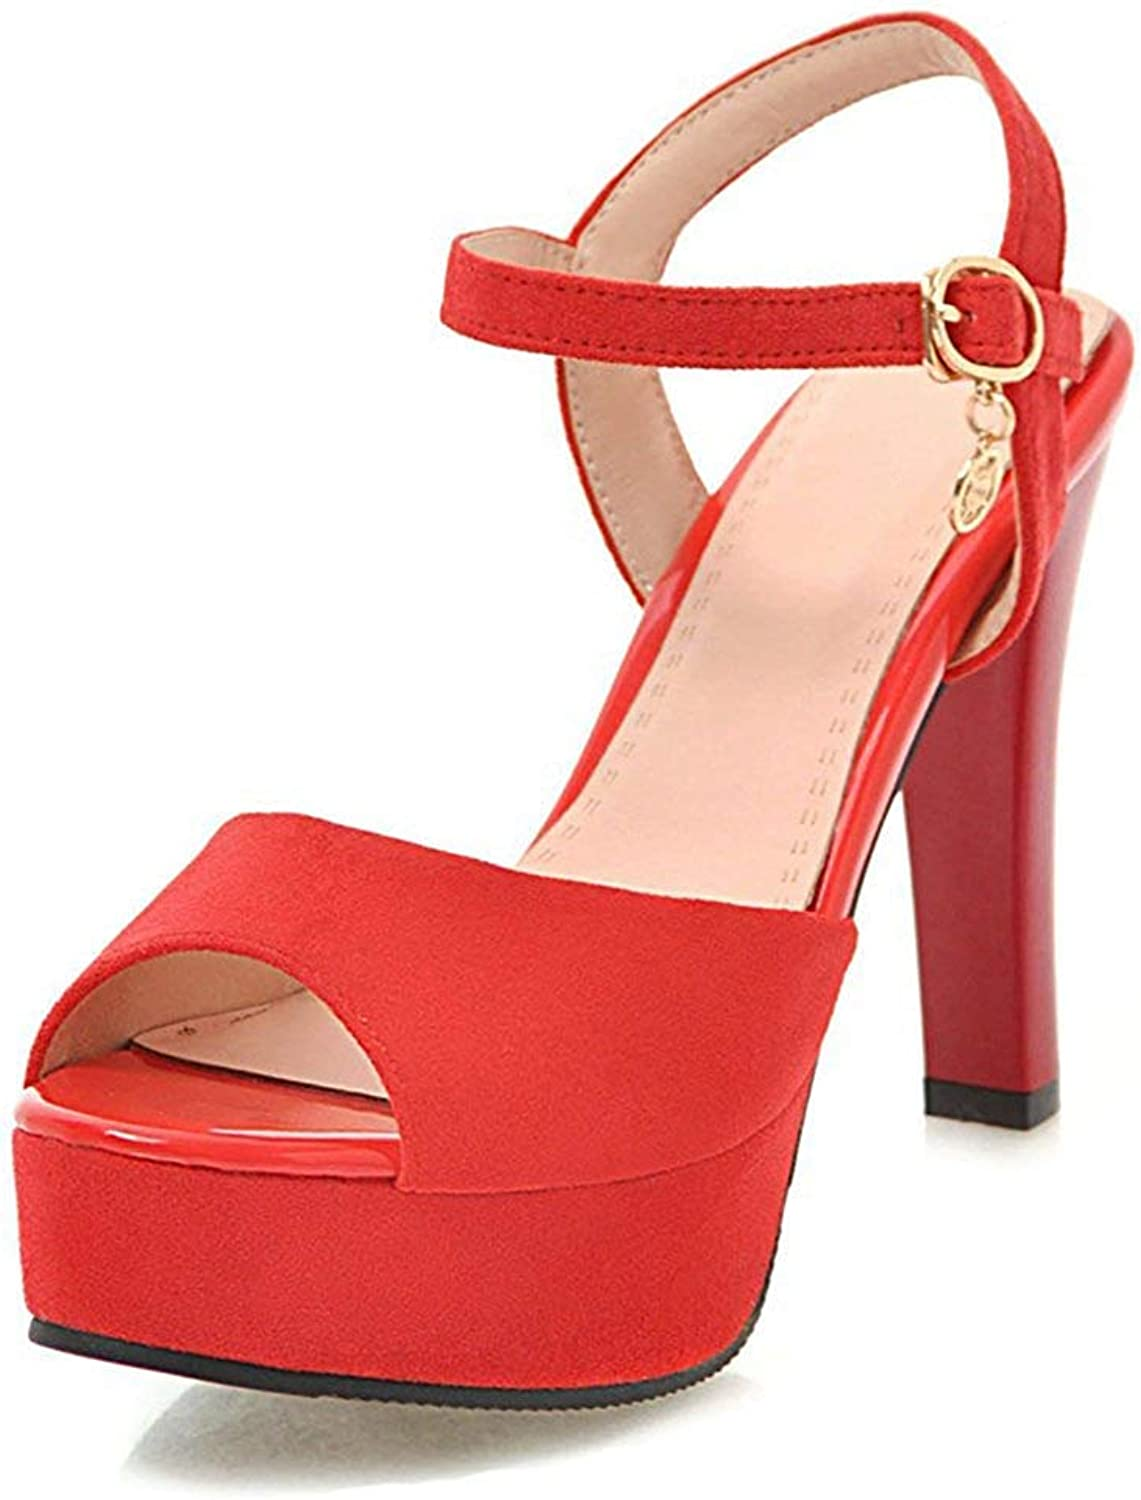 Unm Women's Peep Toe Sandals with Ankle Strap - High Heel Buckled - Platform Stilettos Wedding